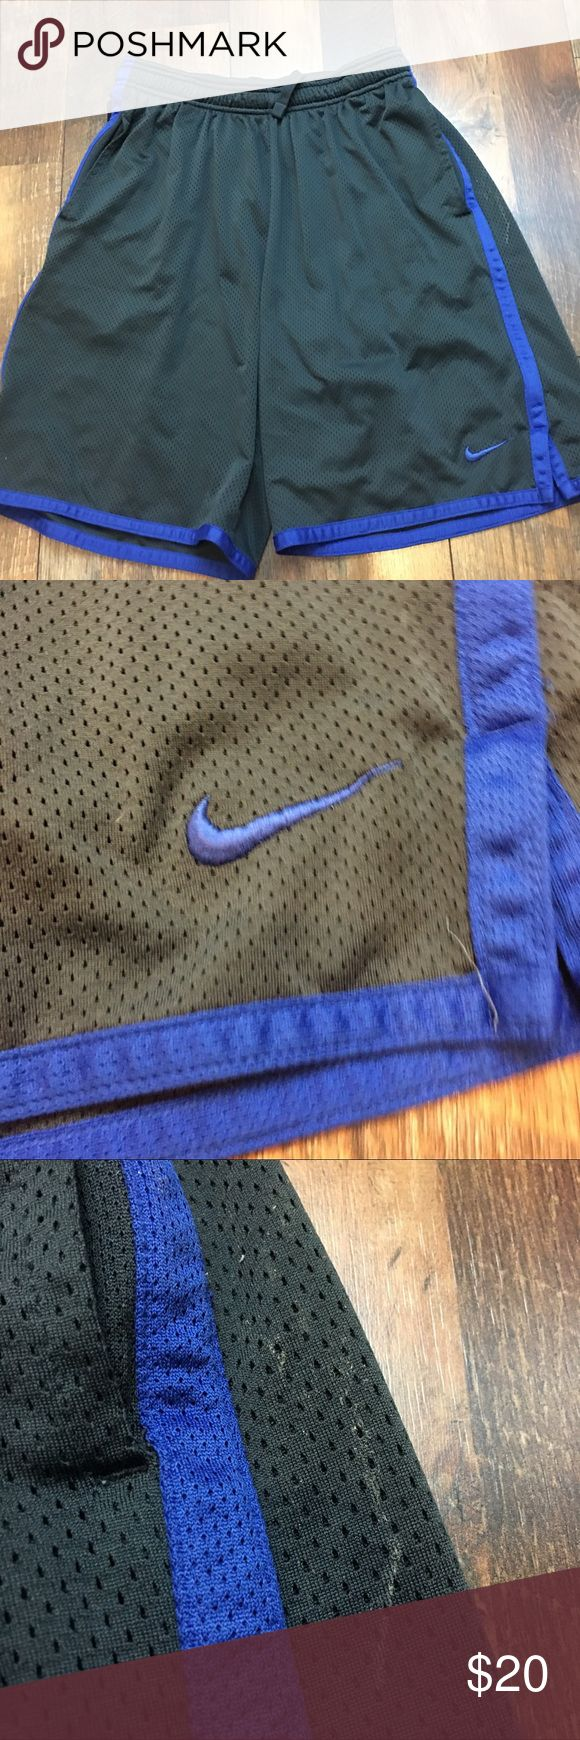 Nike Dri Fit Basketball Athletic Shorts Nike Dri Fit men's shorts size large in good used condition with a stain on the side as seen in pictures. Nike Shorts Athletic